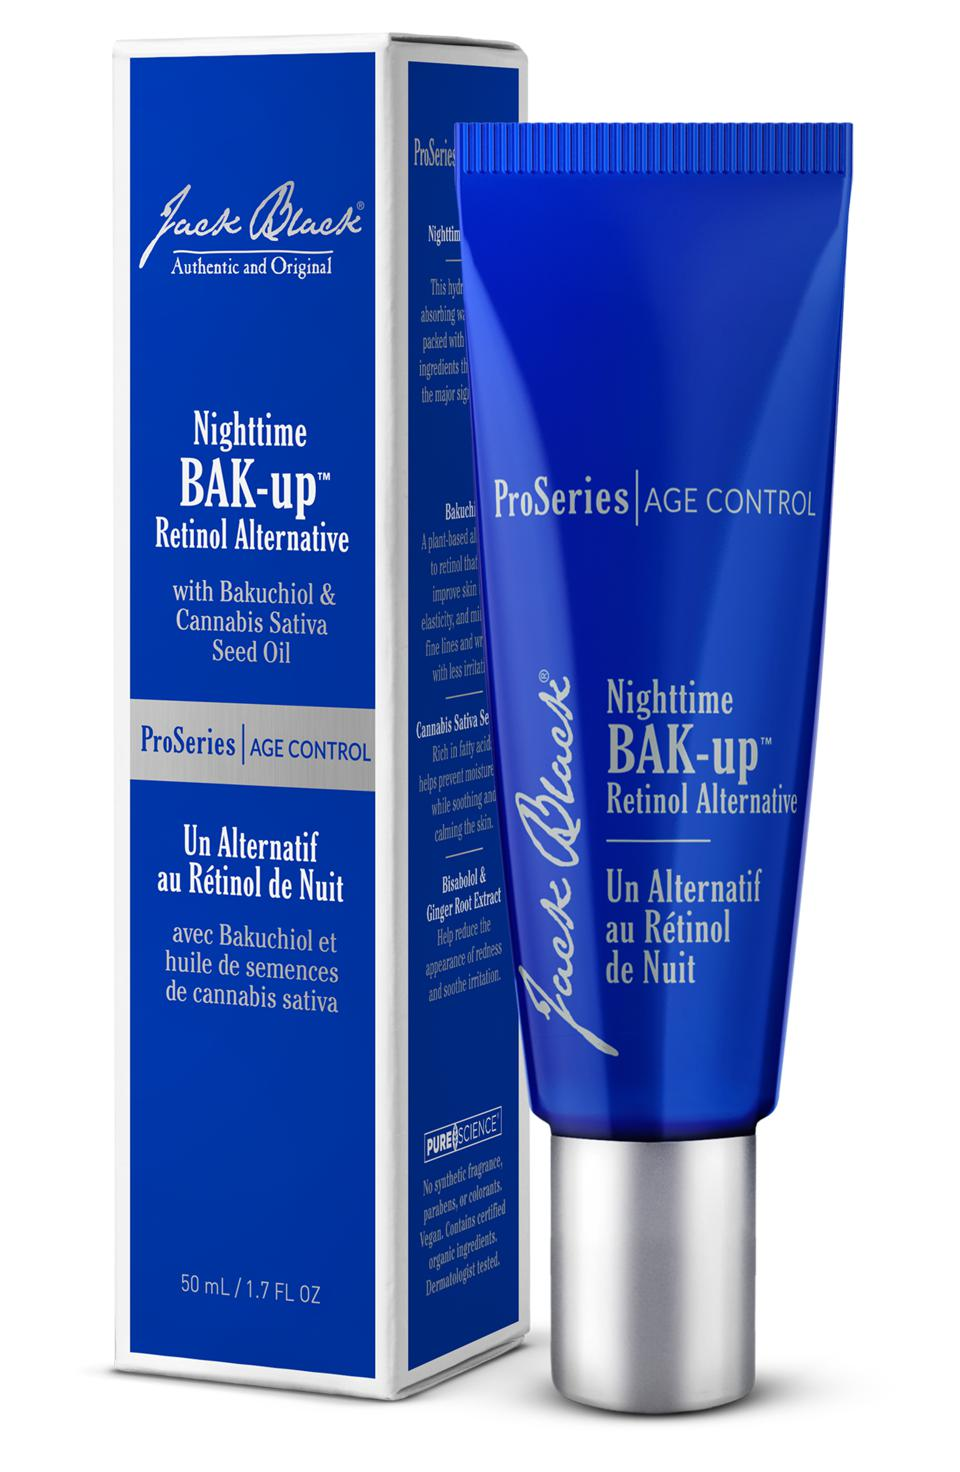 Nighttime BAK-Up is a retinol alternative that fights the major signs of aging.